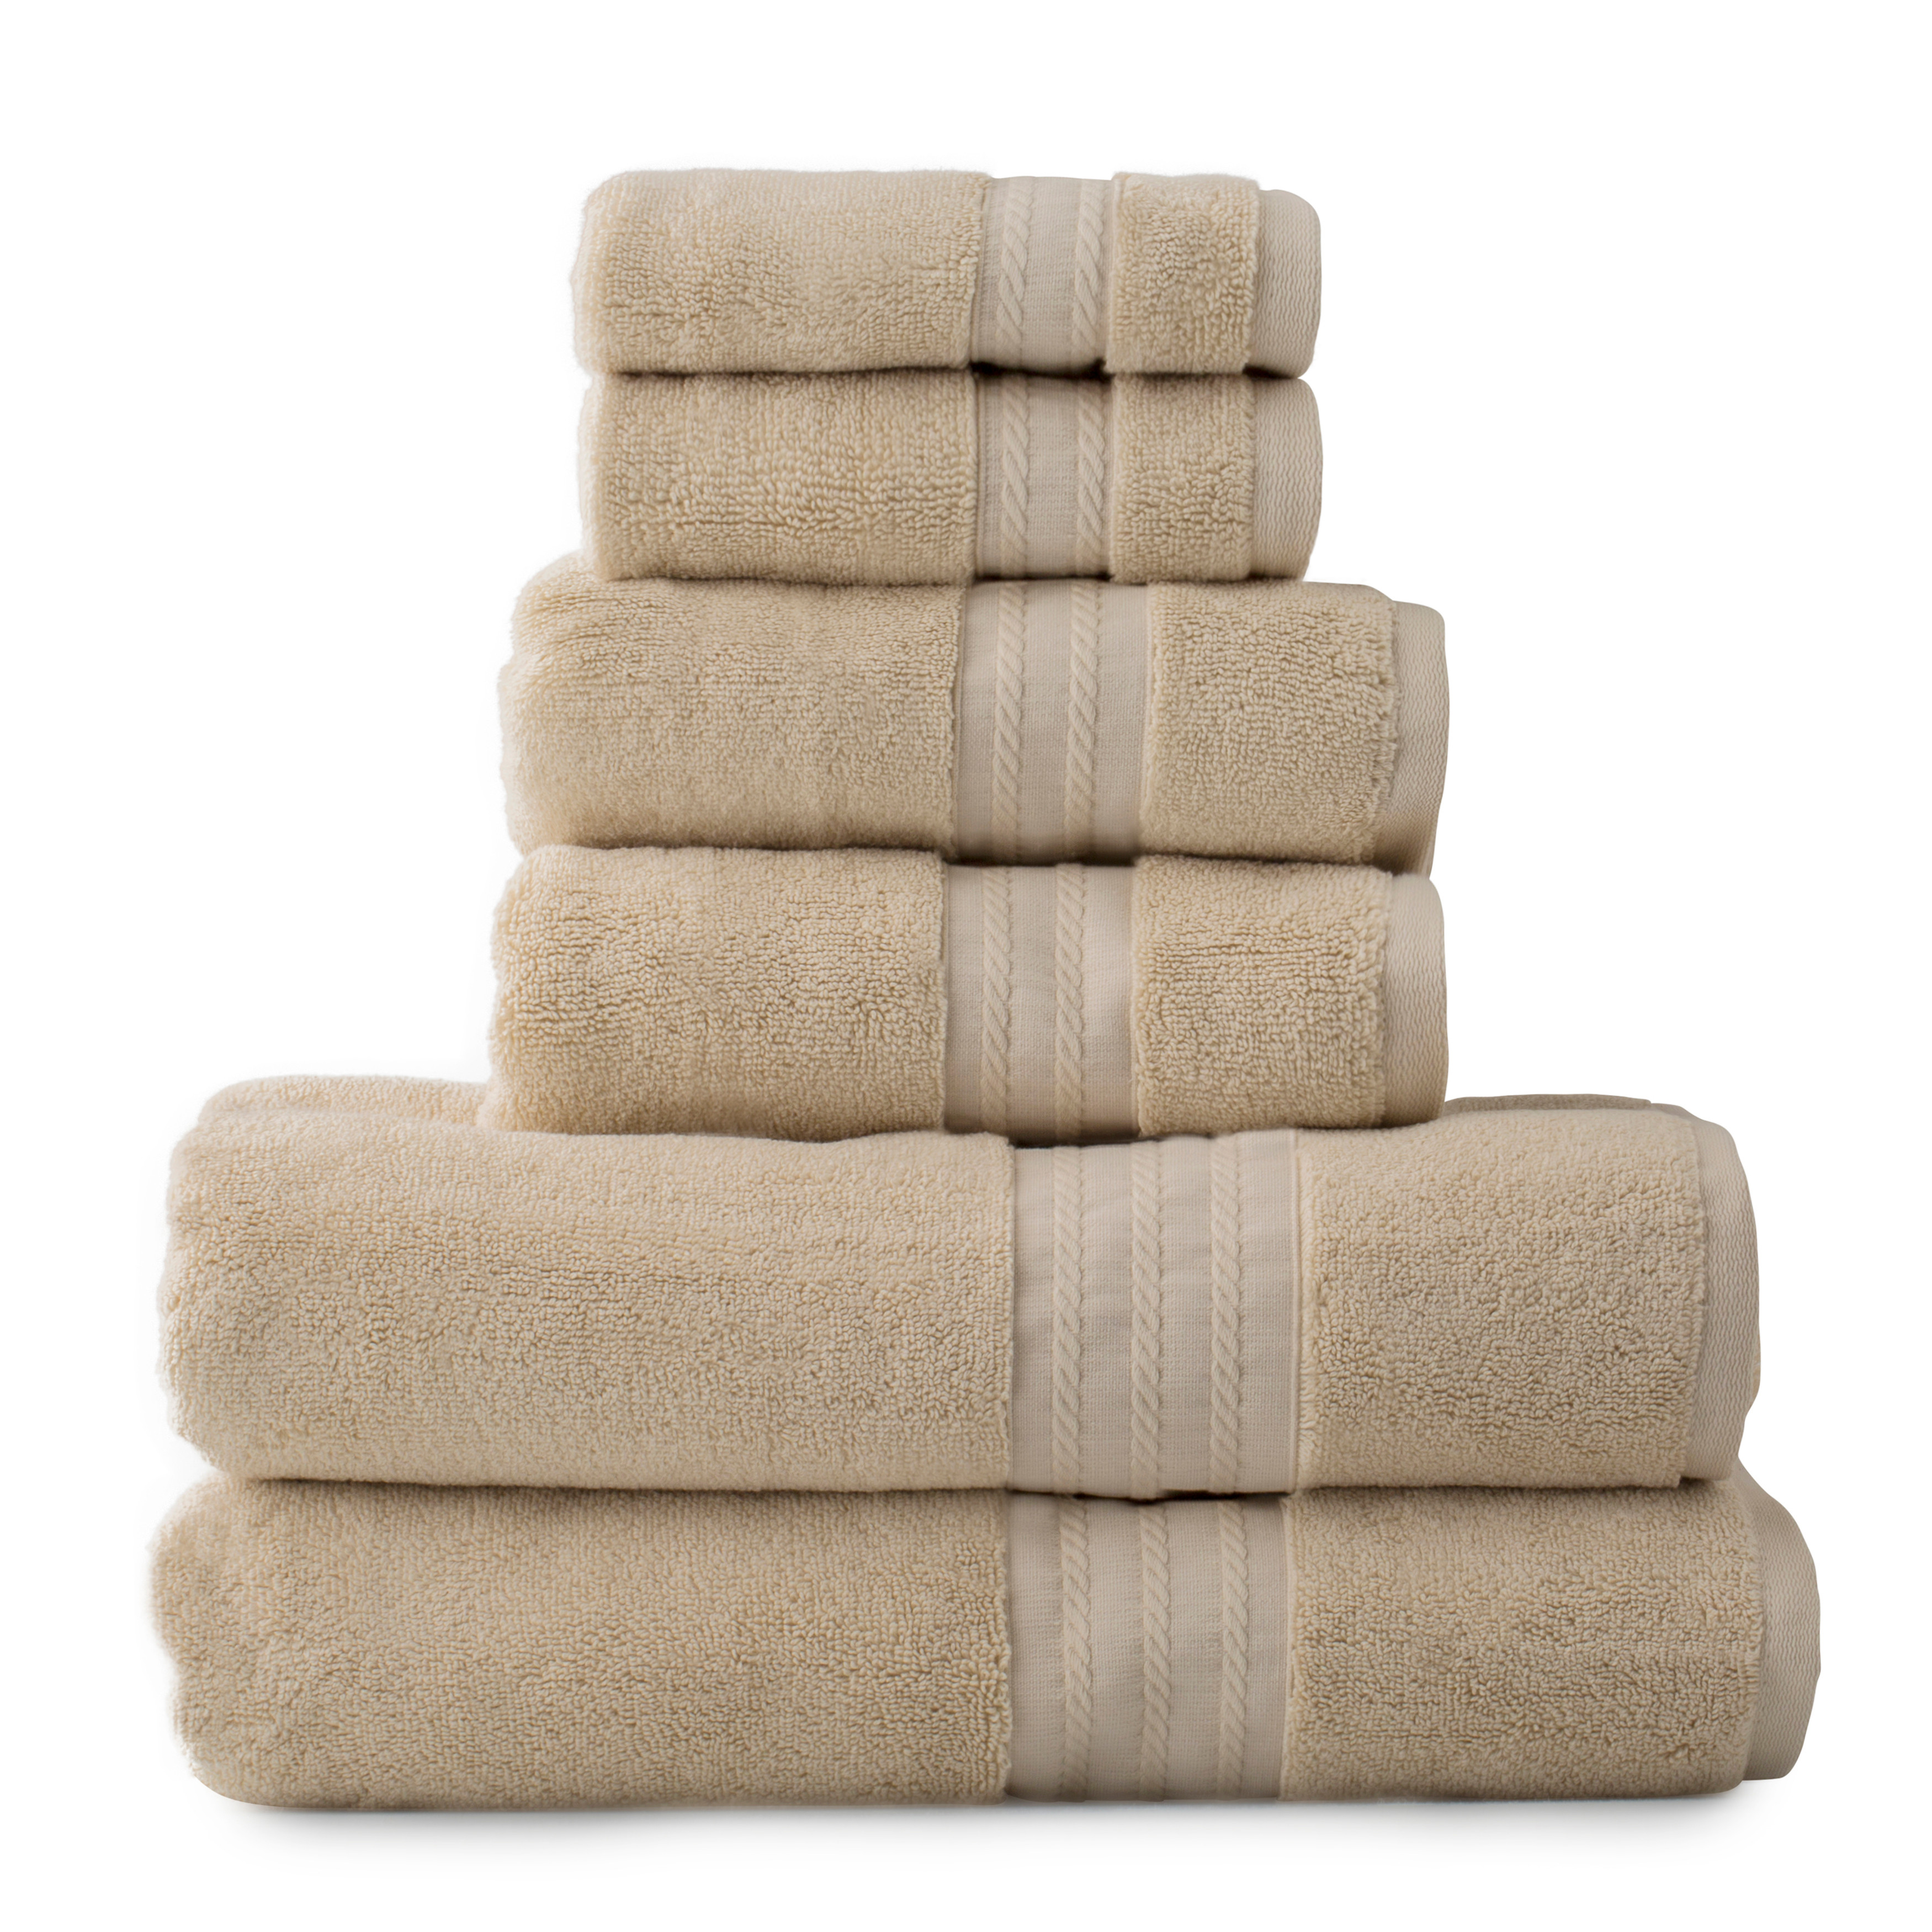 Crowning Touch Luxury Turkish Towel 6-Piece Set